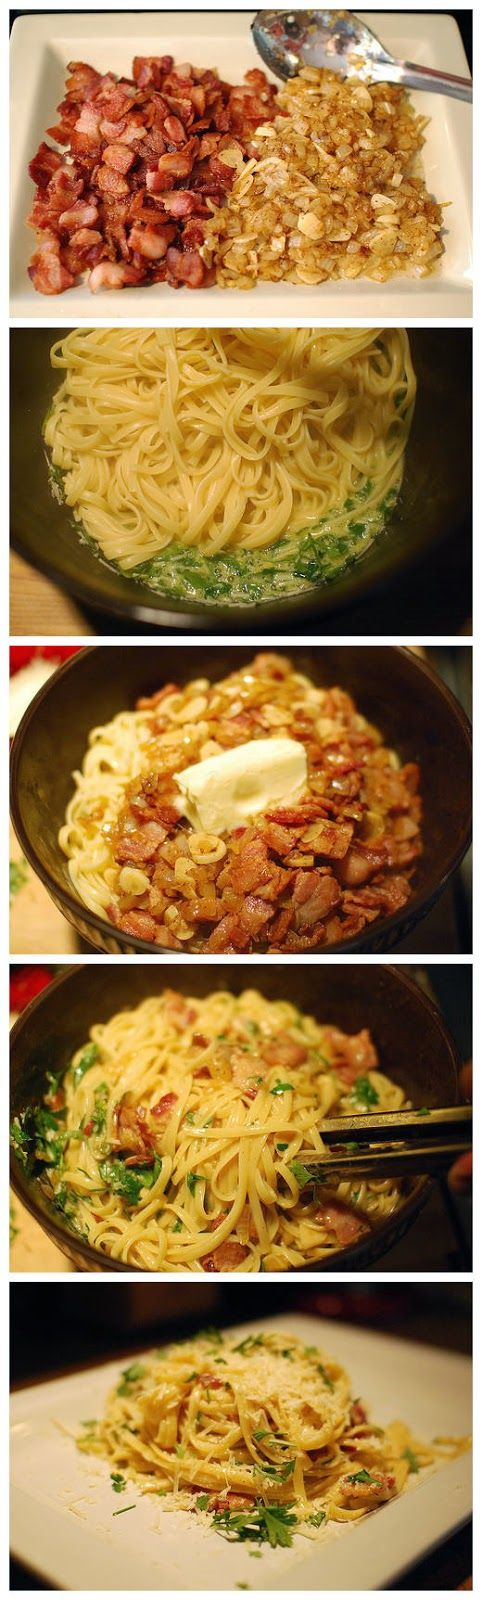 Pasta Carbonara - Healthy, Quick and Inexpensive. This dish is flavorful without all of the extra calories! A great meal for a busy day!